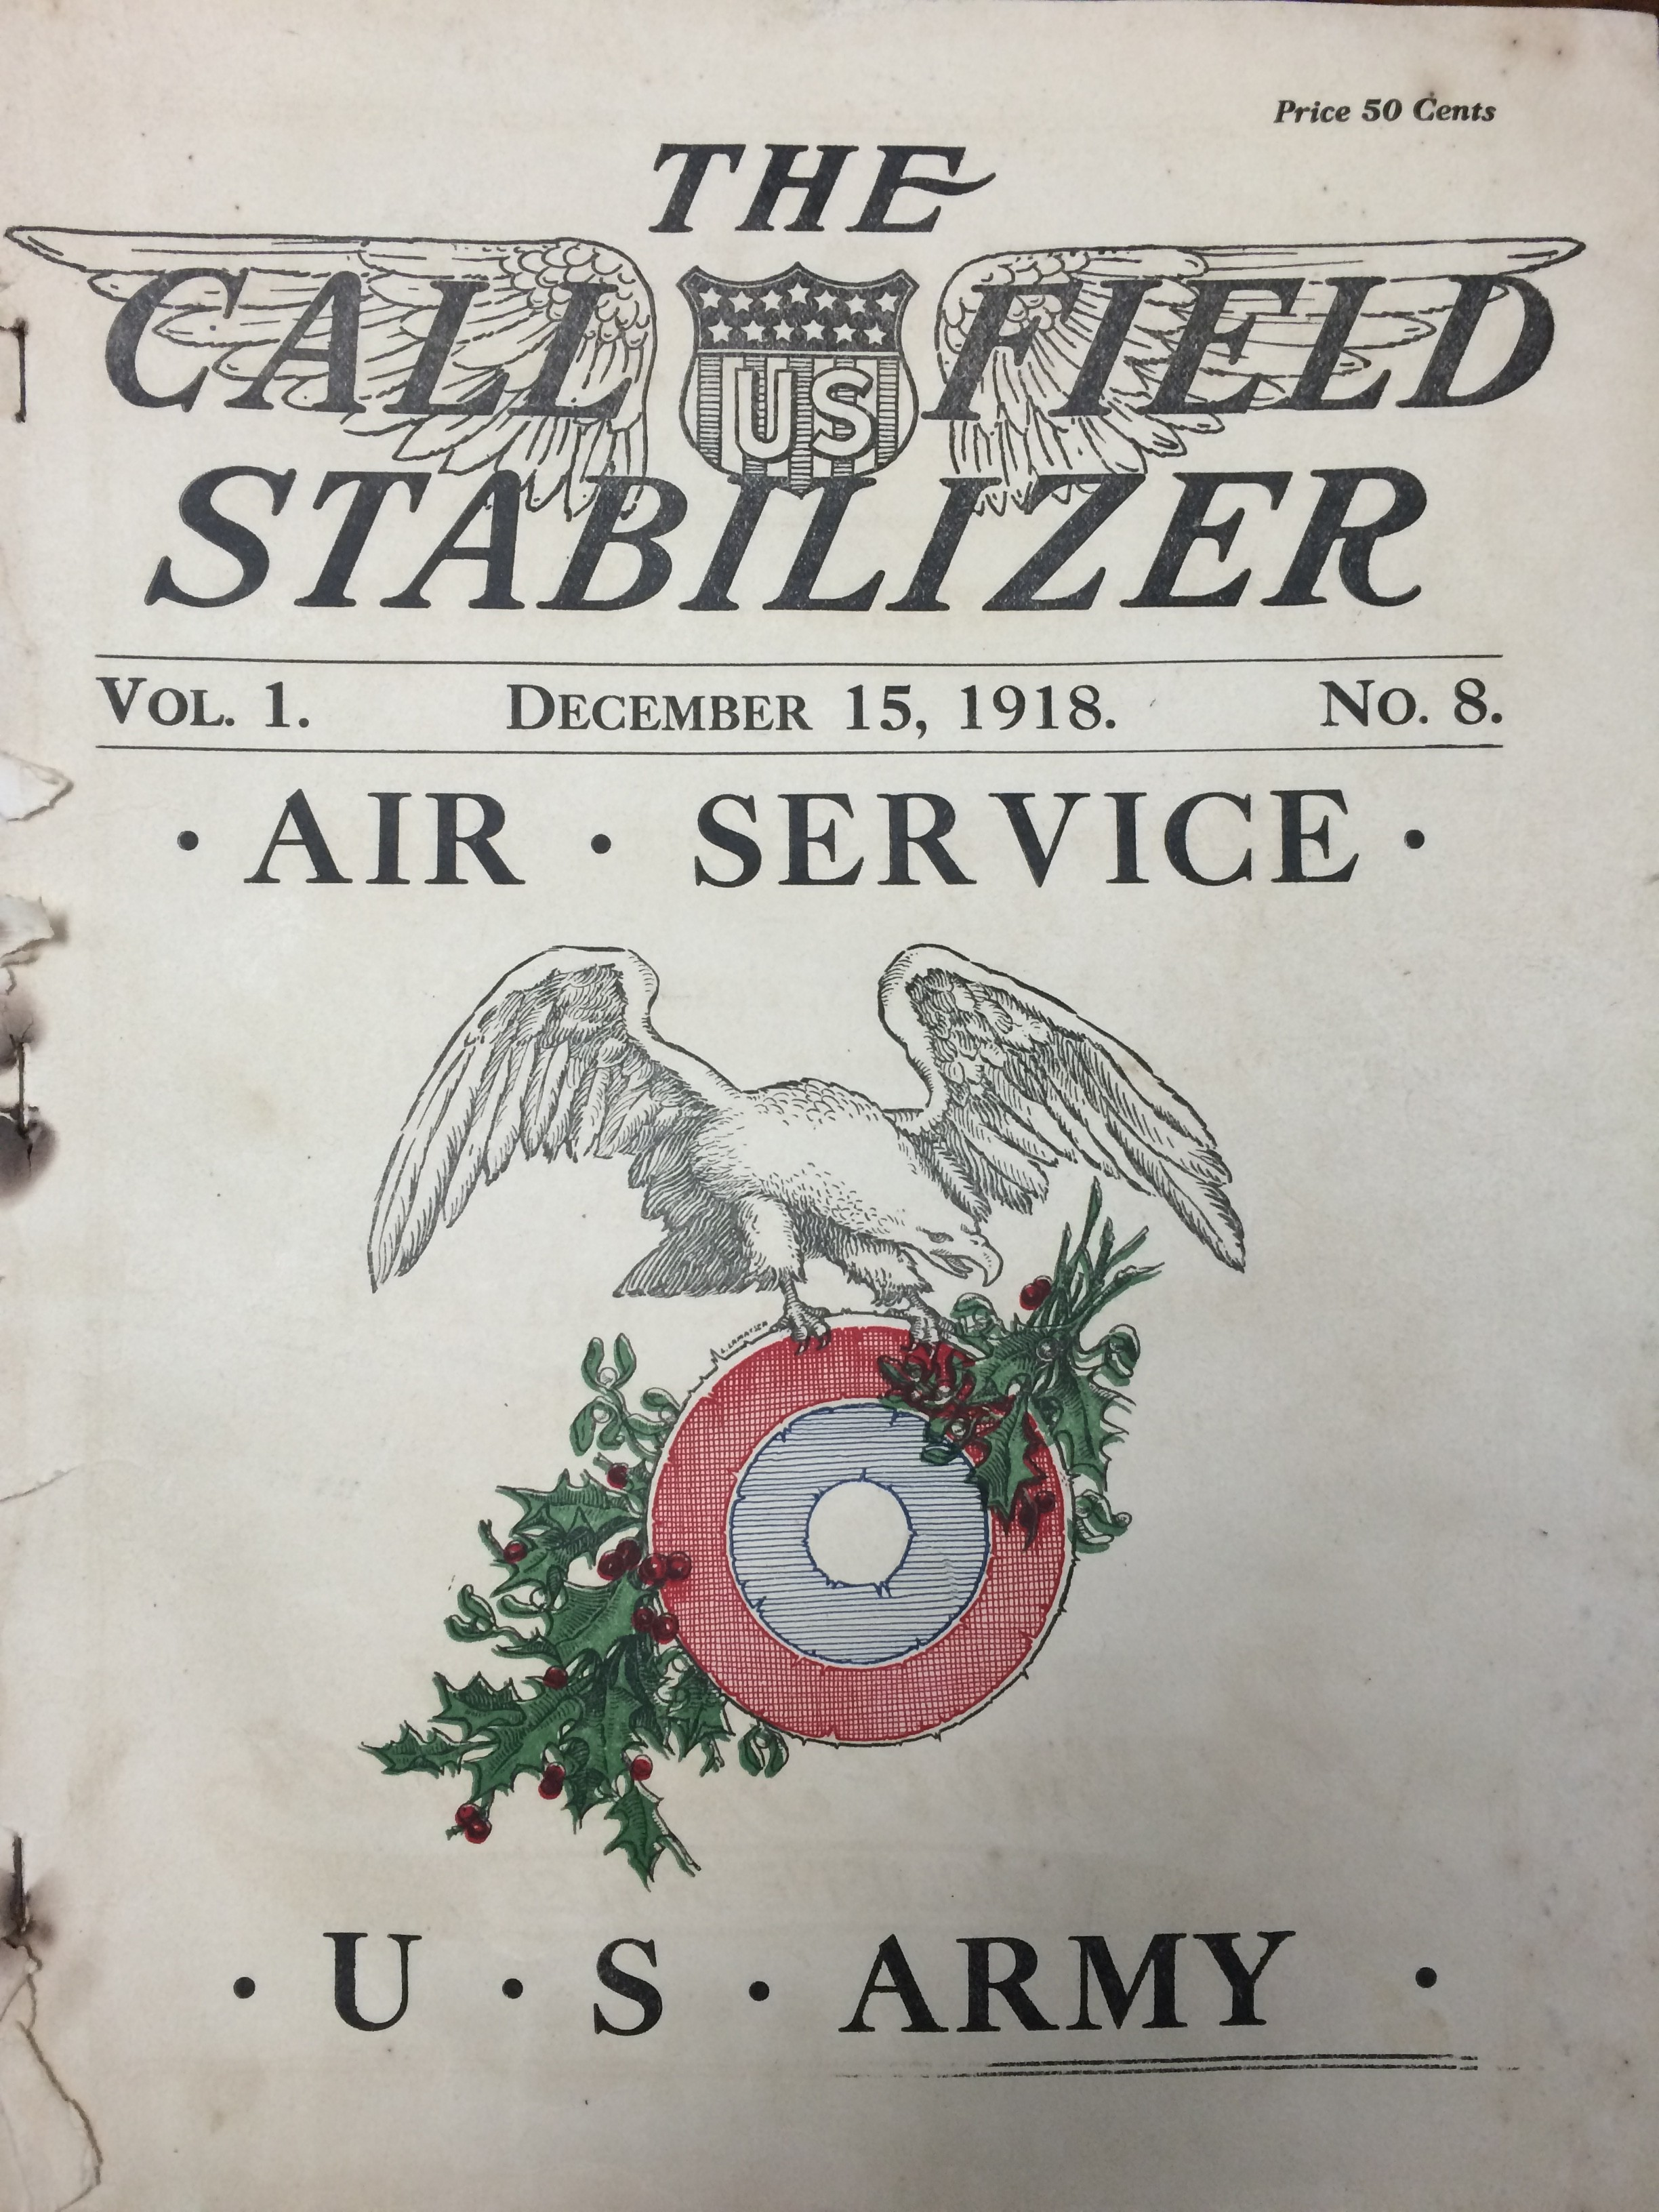 Image 1 December 15, 1918 Call Field Stabilizer